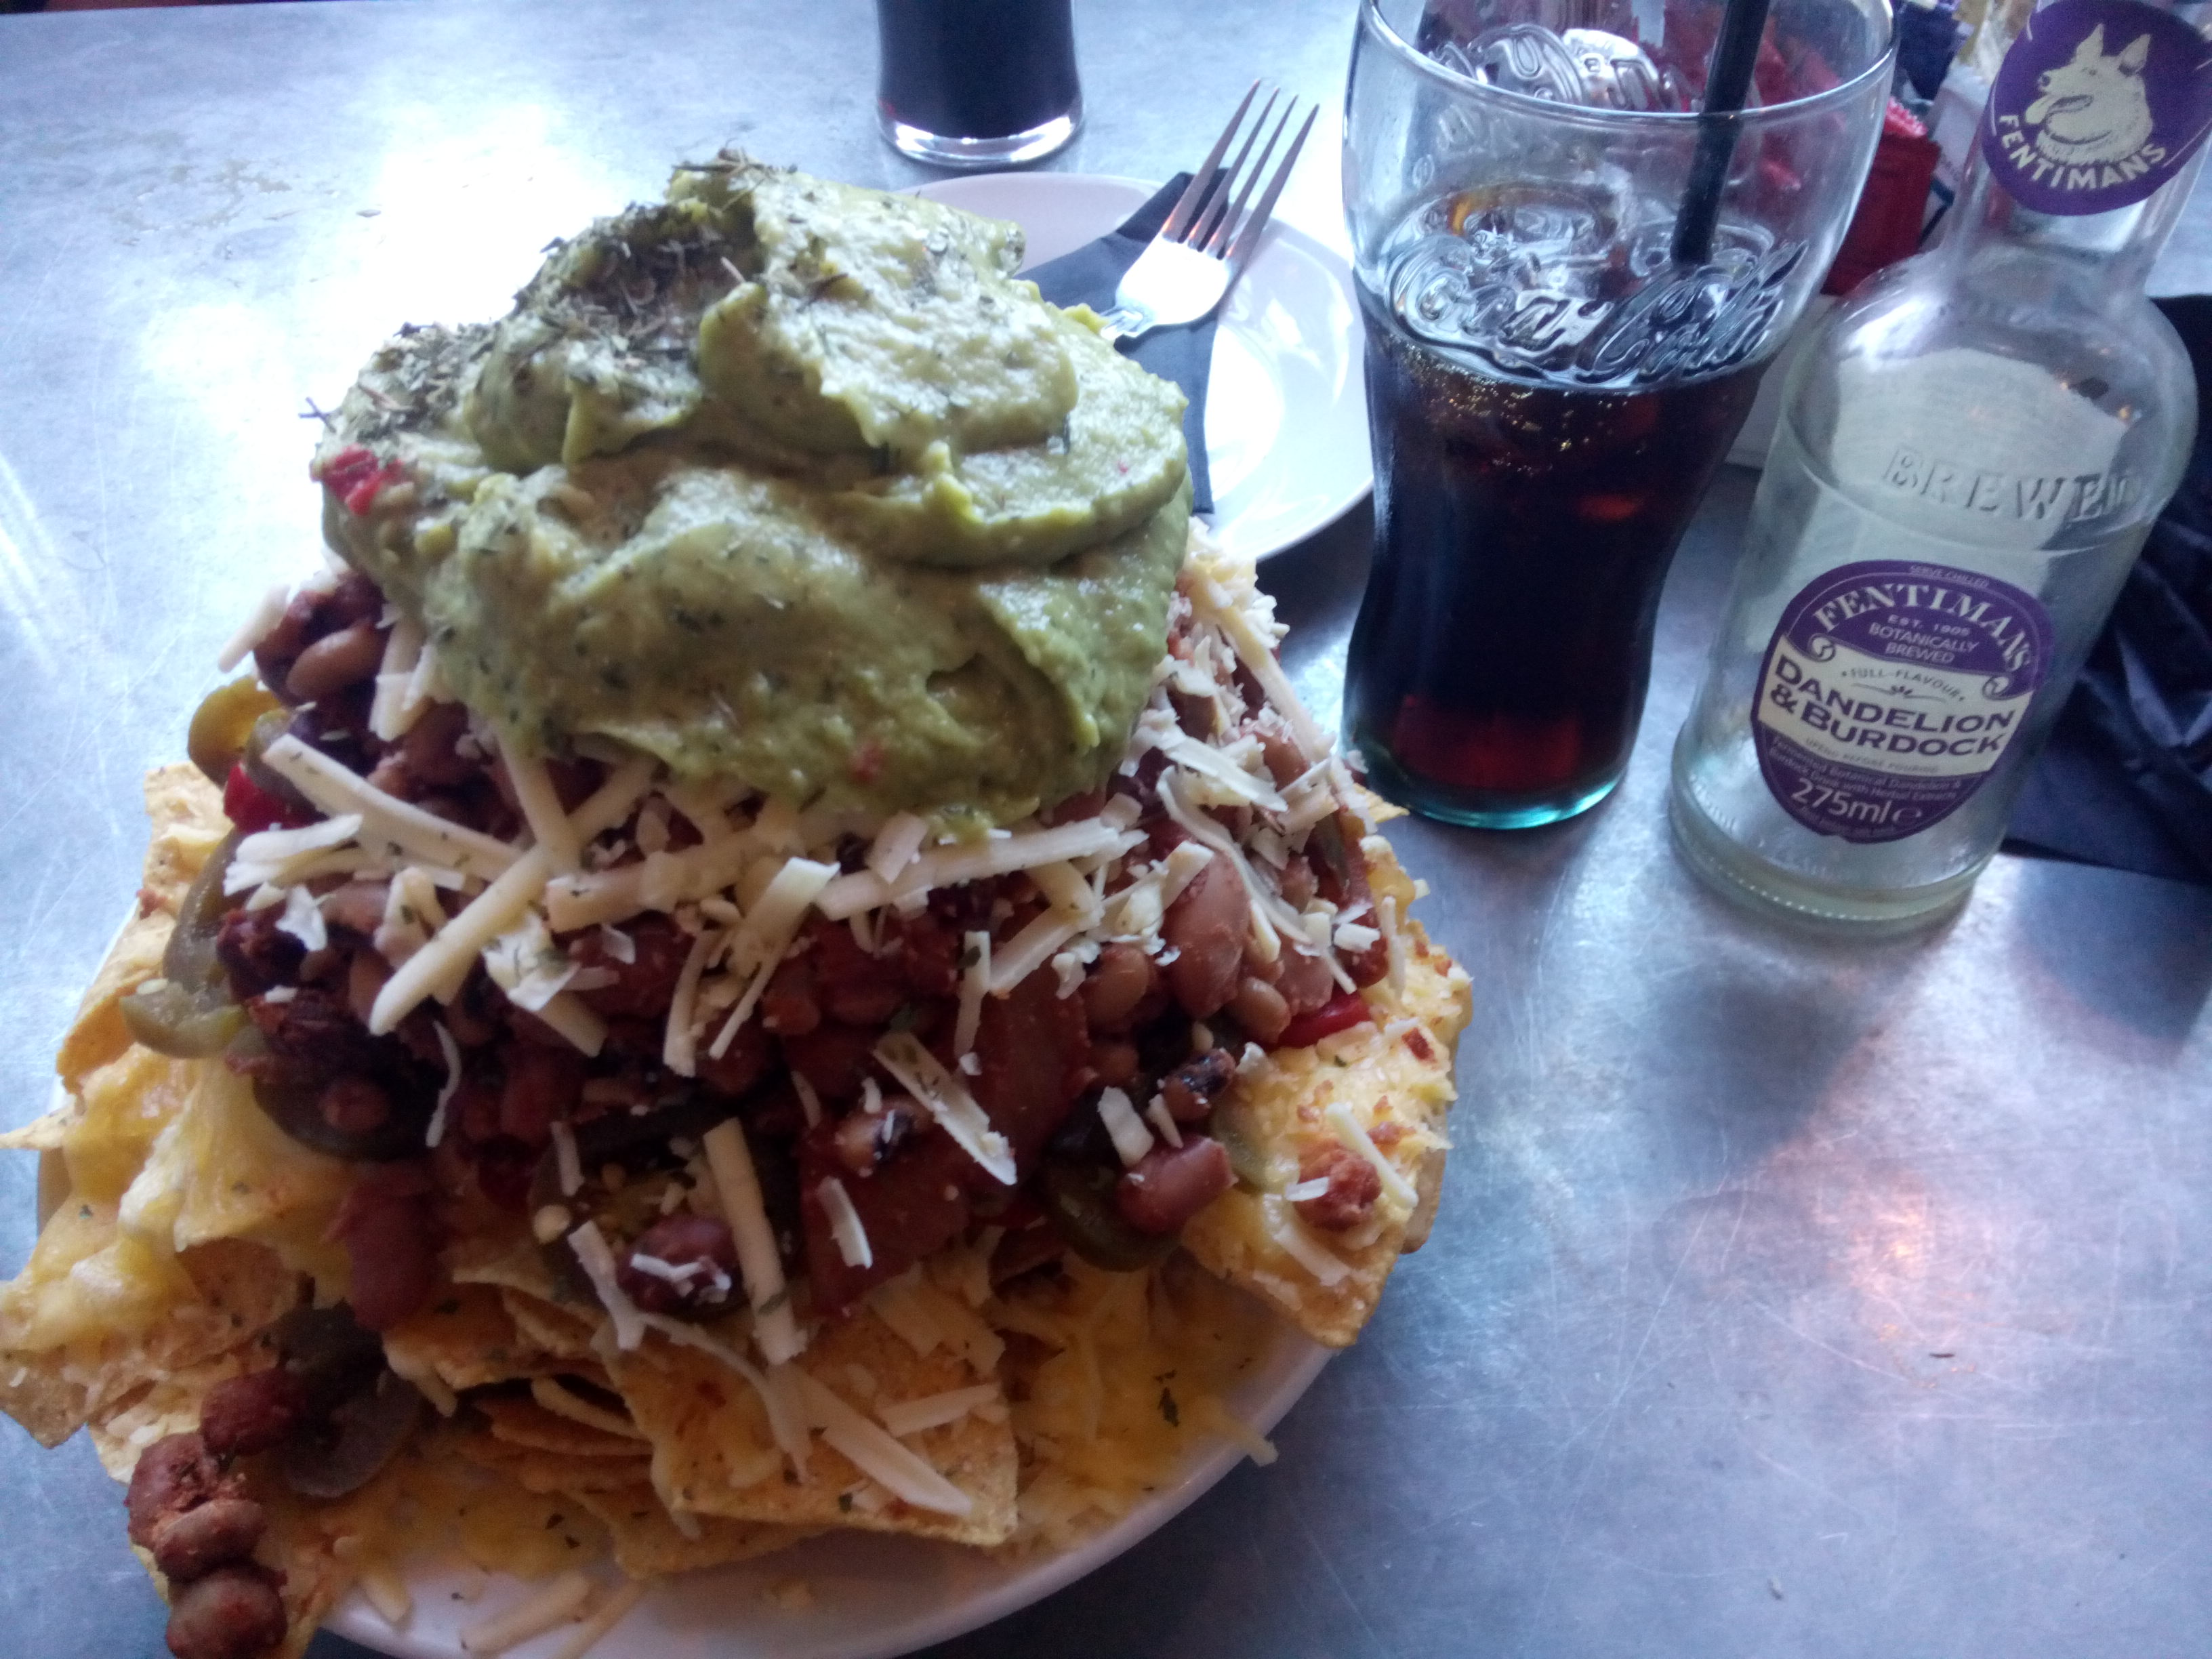 An enormous pile of nachos indispersed with vegan cheese, bean chilli, jalapenos and guacamole